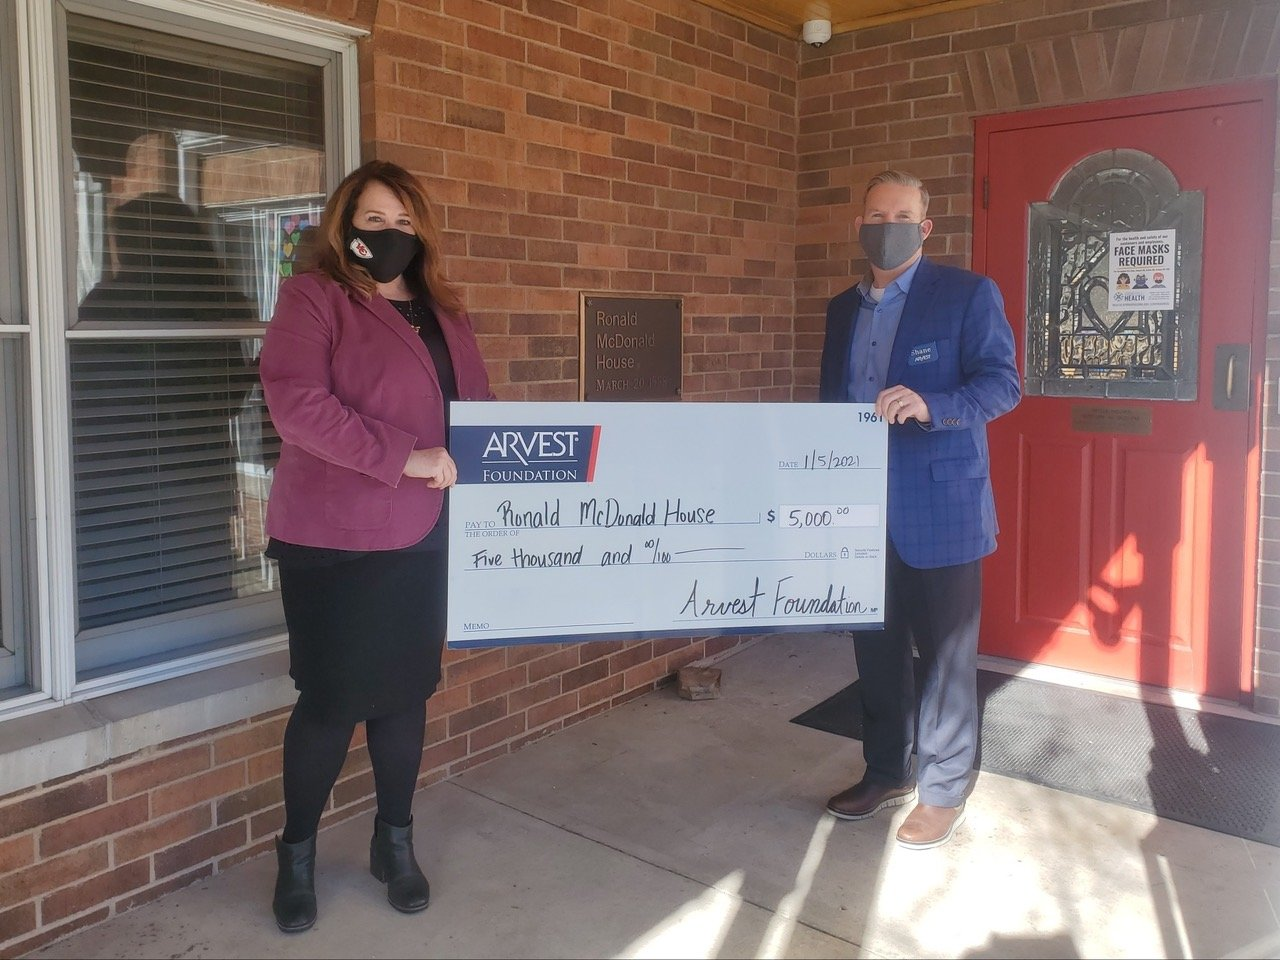 Ronald McDonald House Charities of the Ozarks receives $5,000.